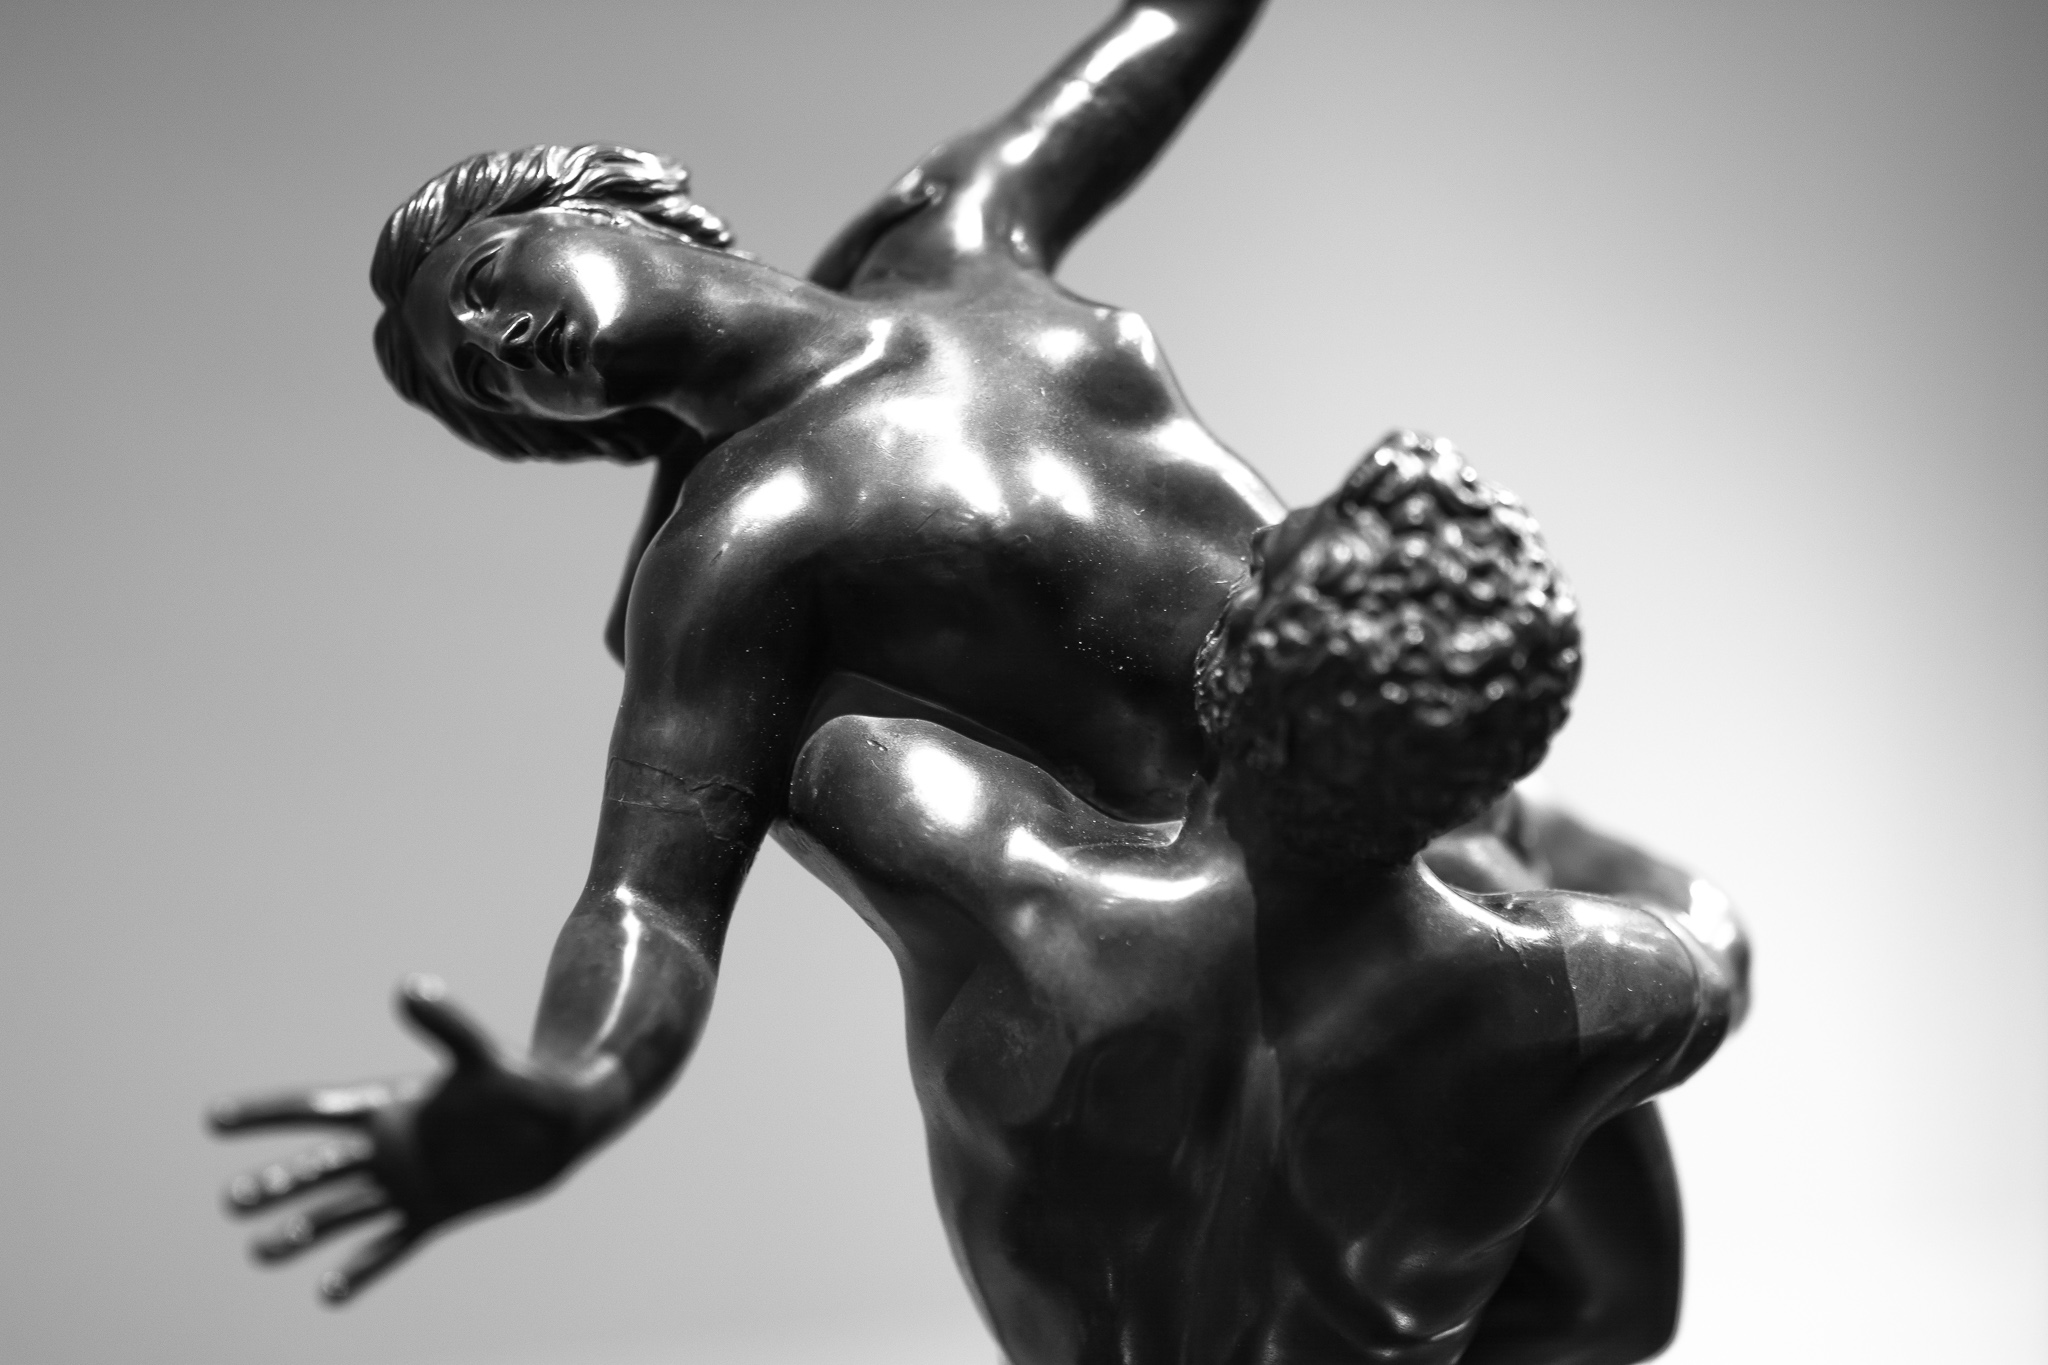 Bronze replica of Giambologna's sculpture, 'The Rape of the Sabina Women', originally carved in white marble approximately 4m high and located in Florence, Italy.<br> According to the legend, after Romulus has founded the city of Rome, women were sought among the people of the Sabines, who after opposing and trying to prevent it, were deceived and all their women were captured.